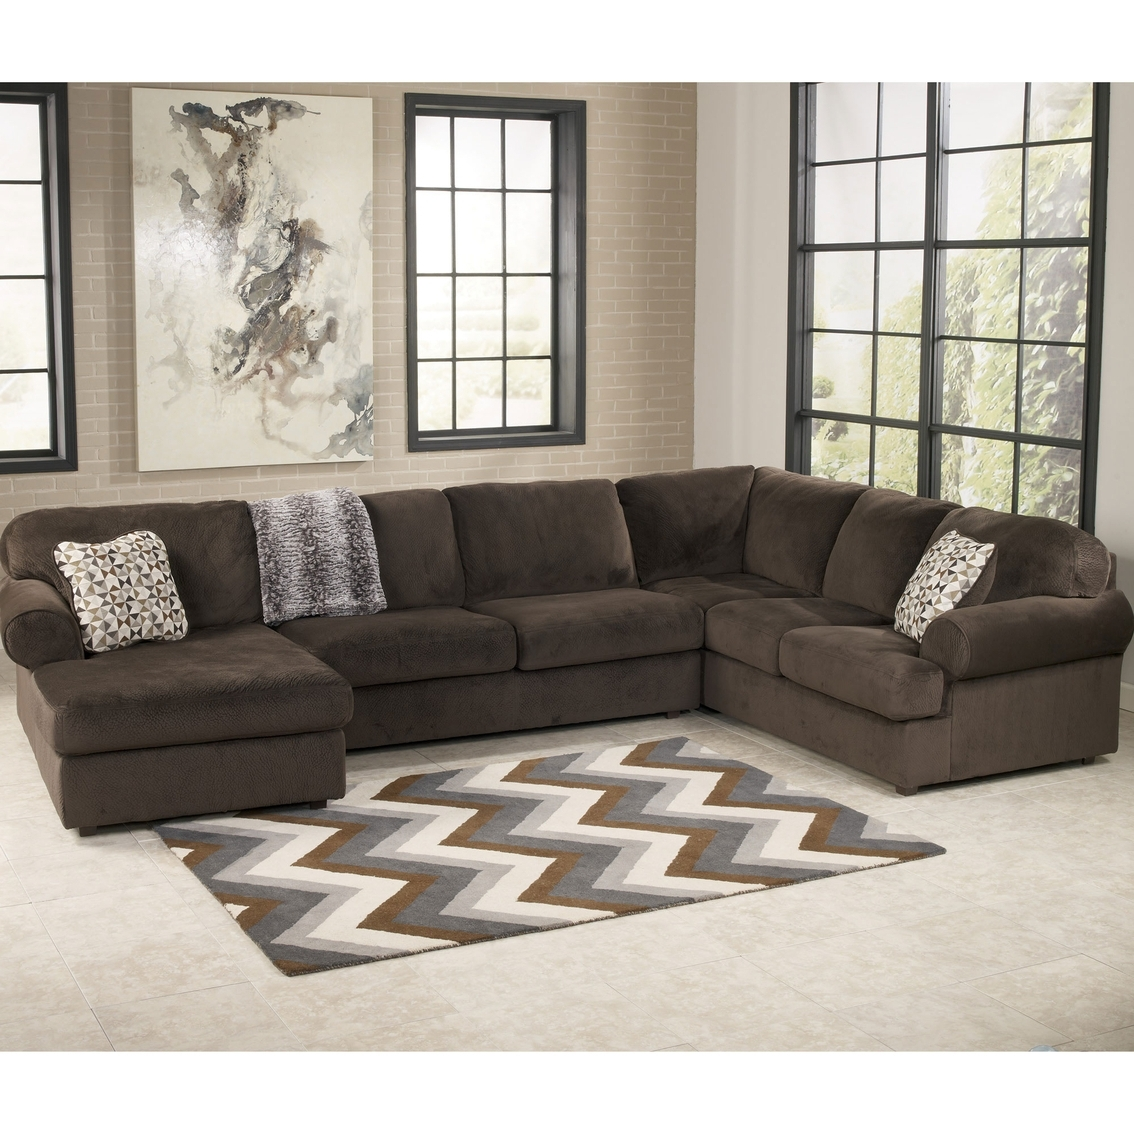 Austin Sectional Sofas In Most Up To Date Signature Designashley Jessa Place 3 Pc (View 3 of 15)